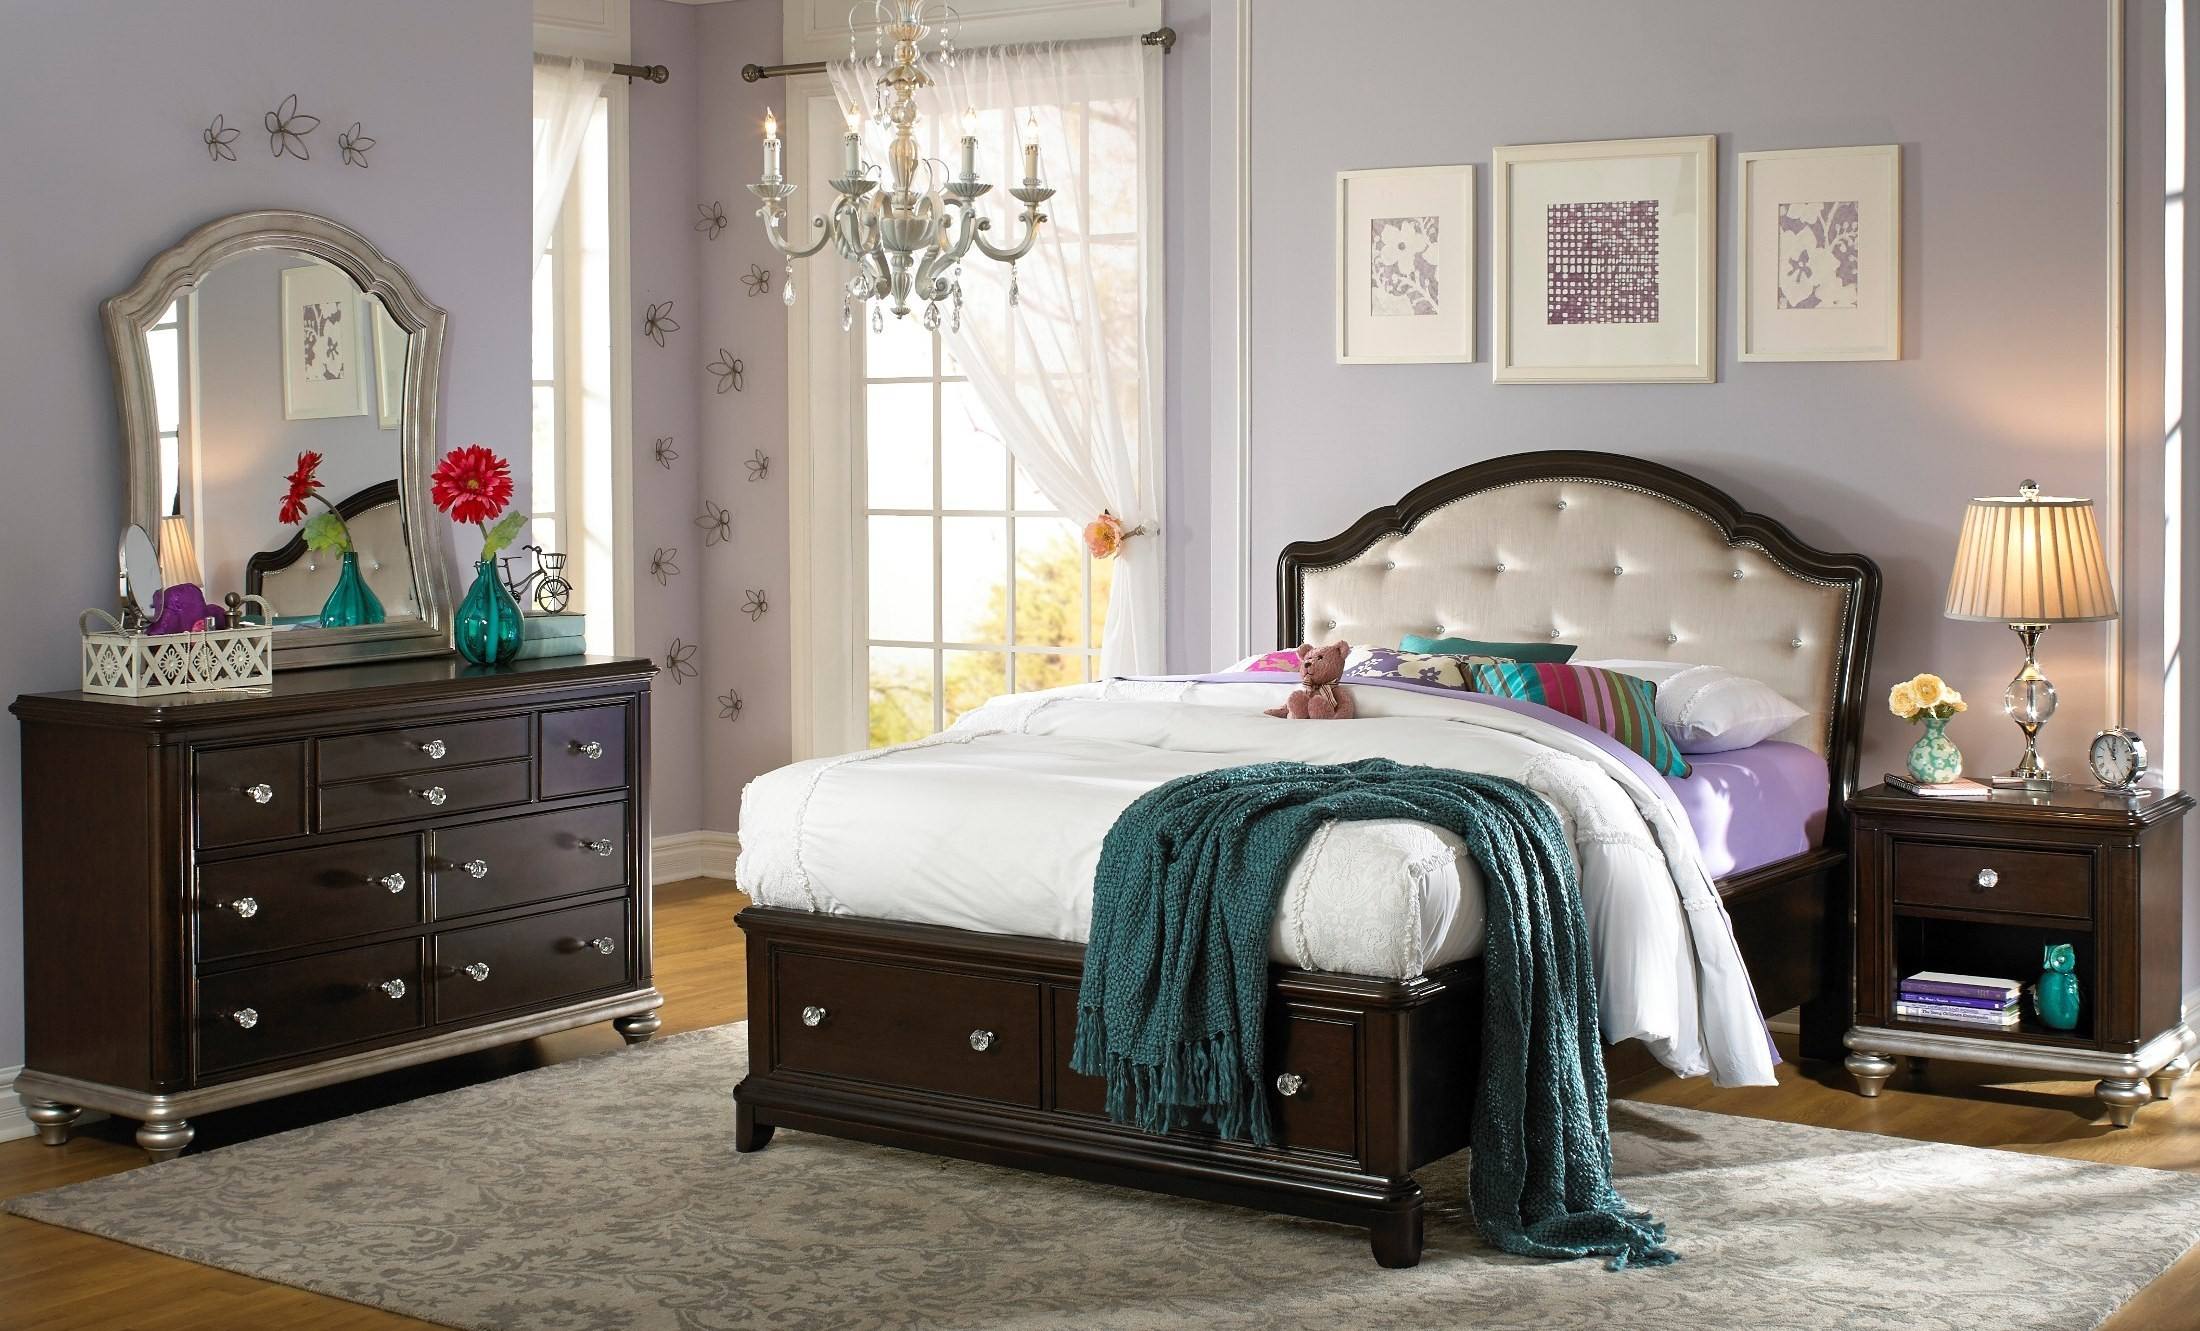 Glamour youth panel storage bedroom set from samuel lawrence 8688 530 531 411 coleman furniture for Youth storage bedroom furniture